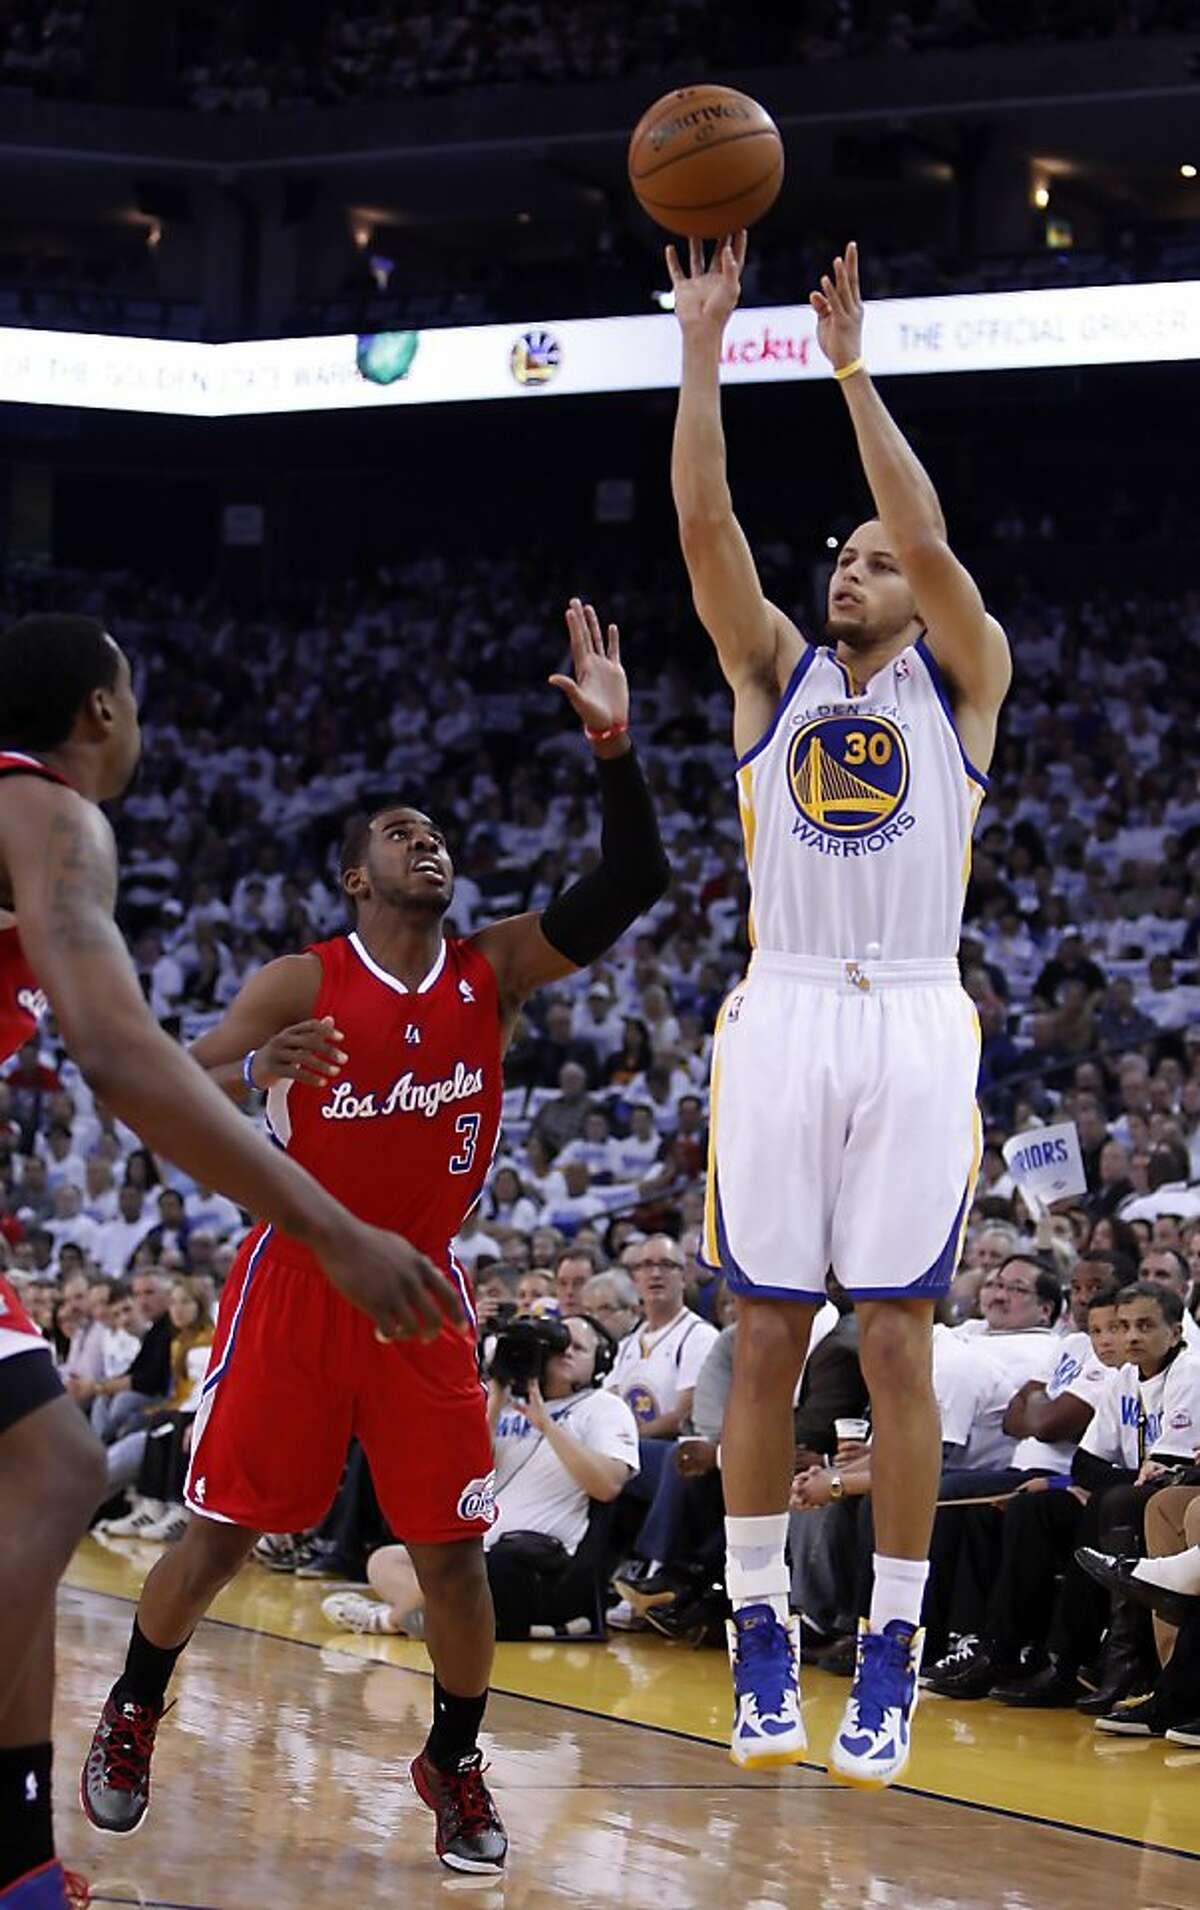 Stephen Curry puts up a three-point shot past Chris Paul in the first half of the game. The Warriors played the Los Angeles Clippers at Oracle Arena in Oakland, Calif., on Wednesday, January 2, 2013.